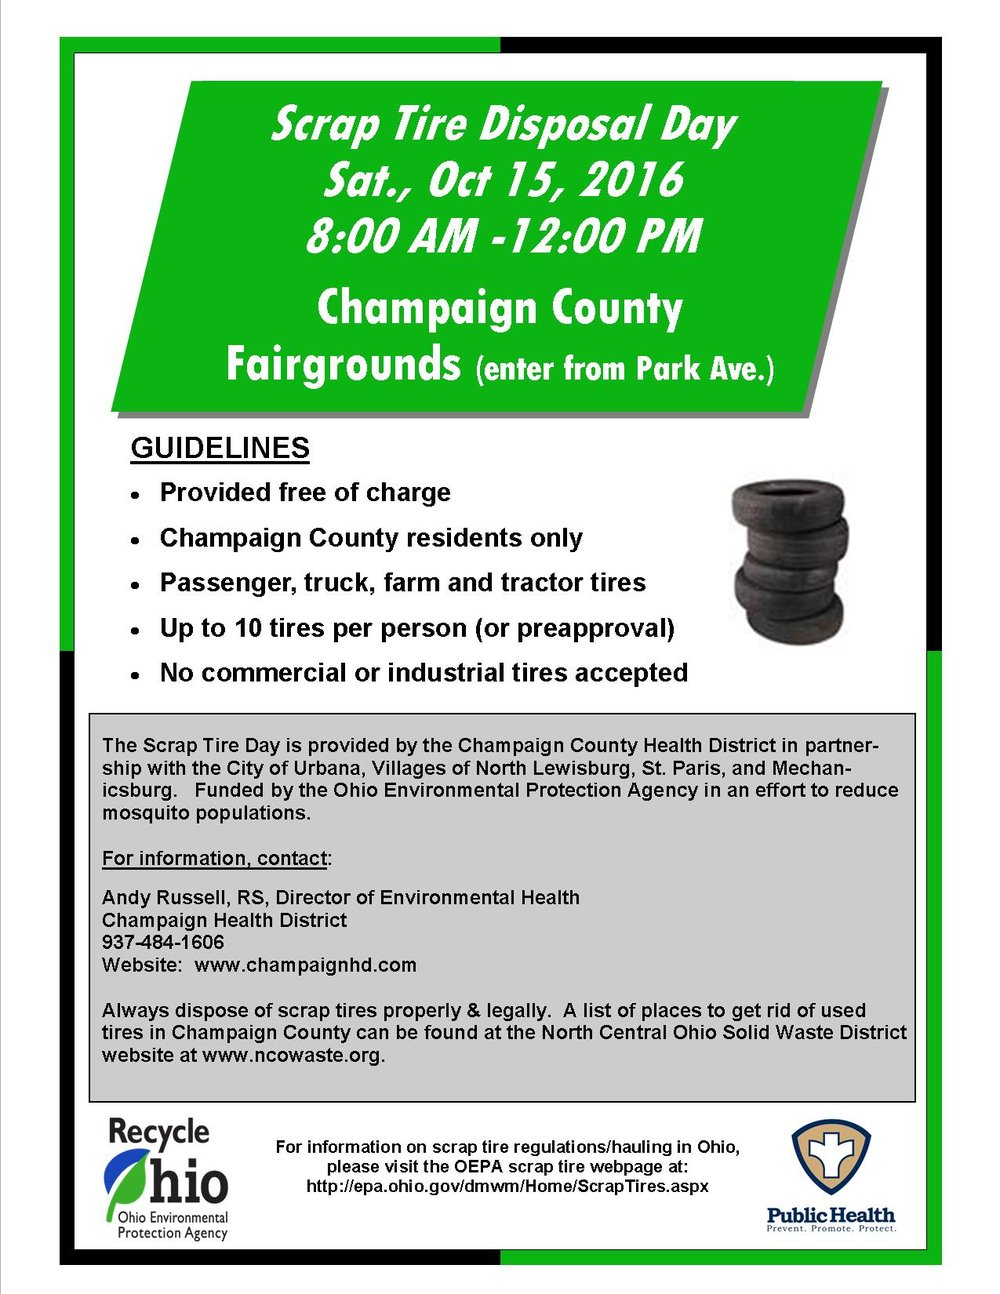 Scrap Tire Day Flier 10-15-2016 (3).jpg